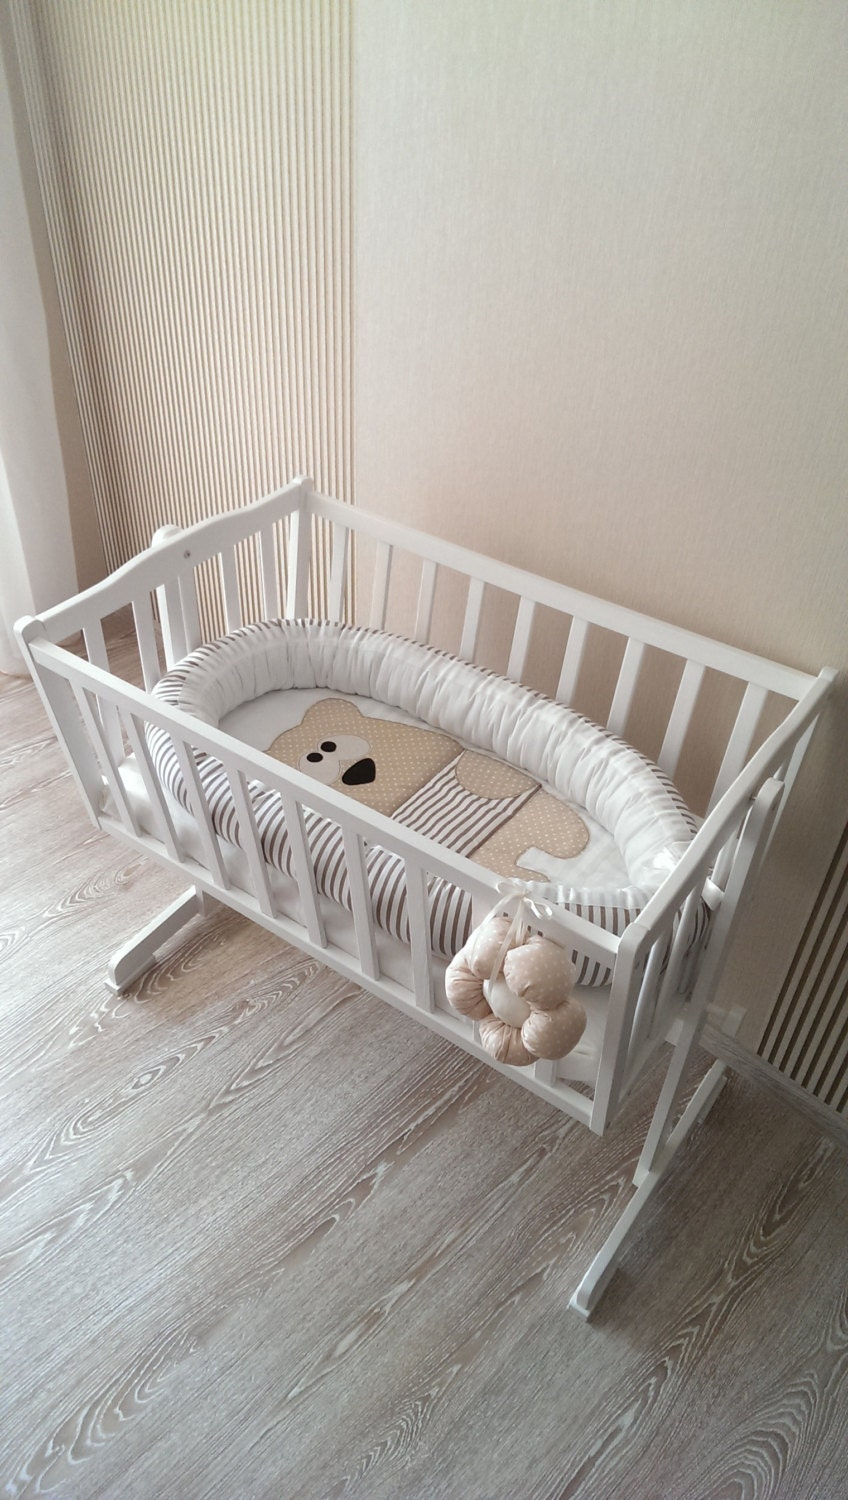 Baby bed co sleeper - Babynest Transformer Handmade Baby Nest Babynest Bed Co Sleeper Baby Travel Bed Travel Cot Baby Shower Present